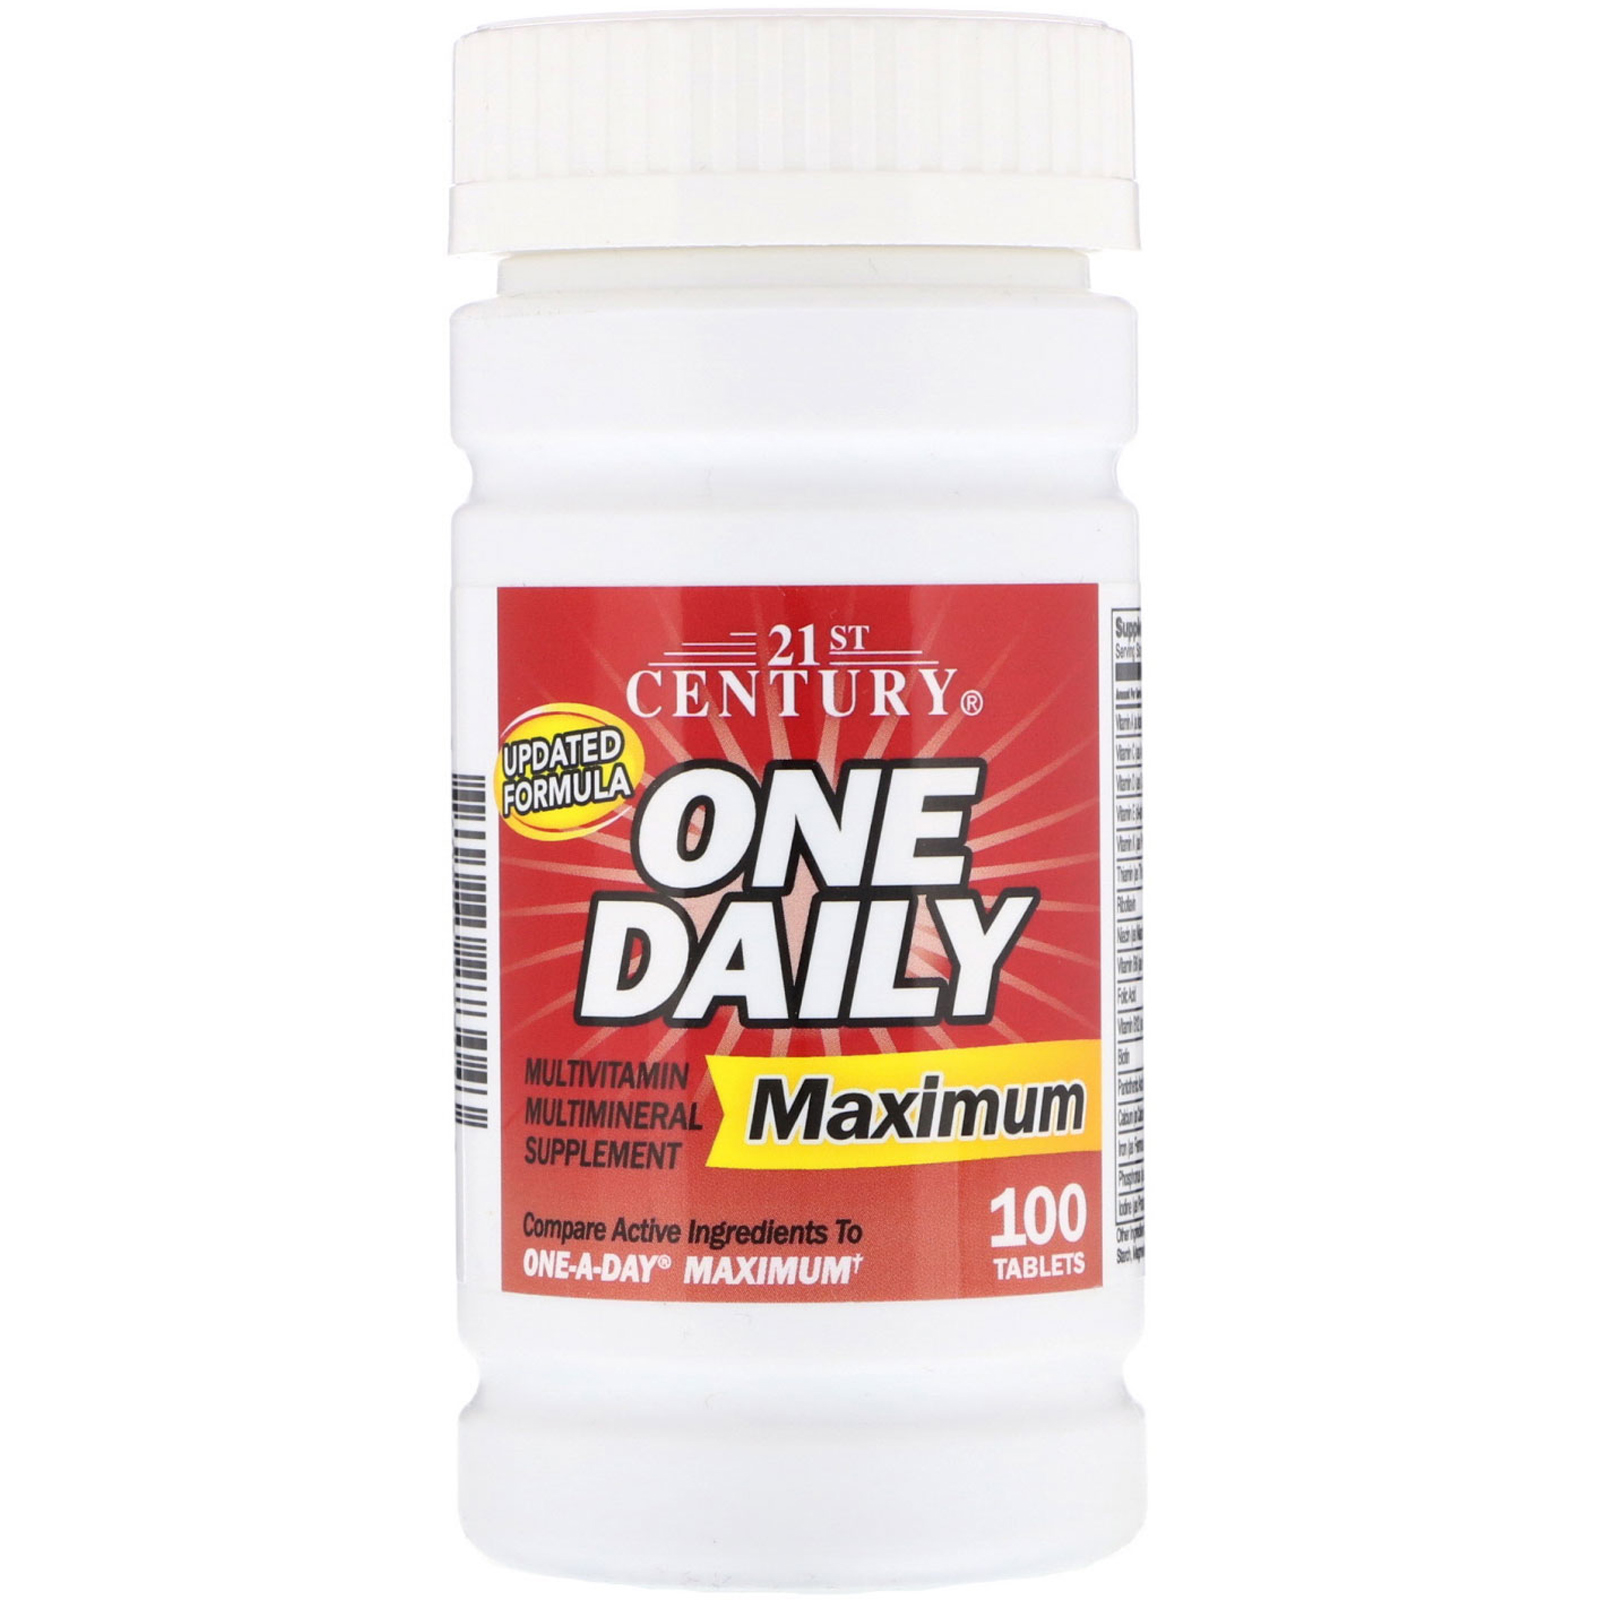 21st Century One Daily Maximum Multivitamin Multimineral 100 Tablets Iherb